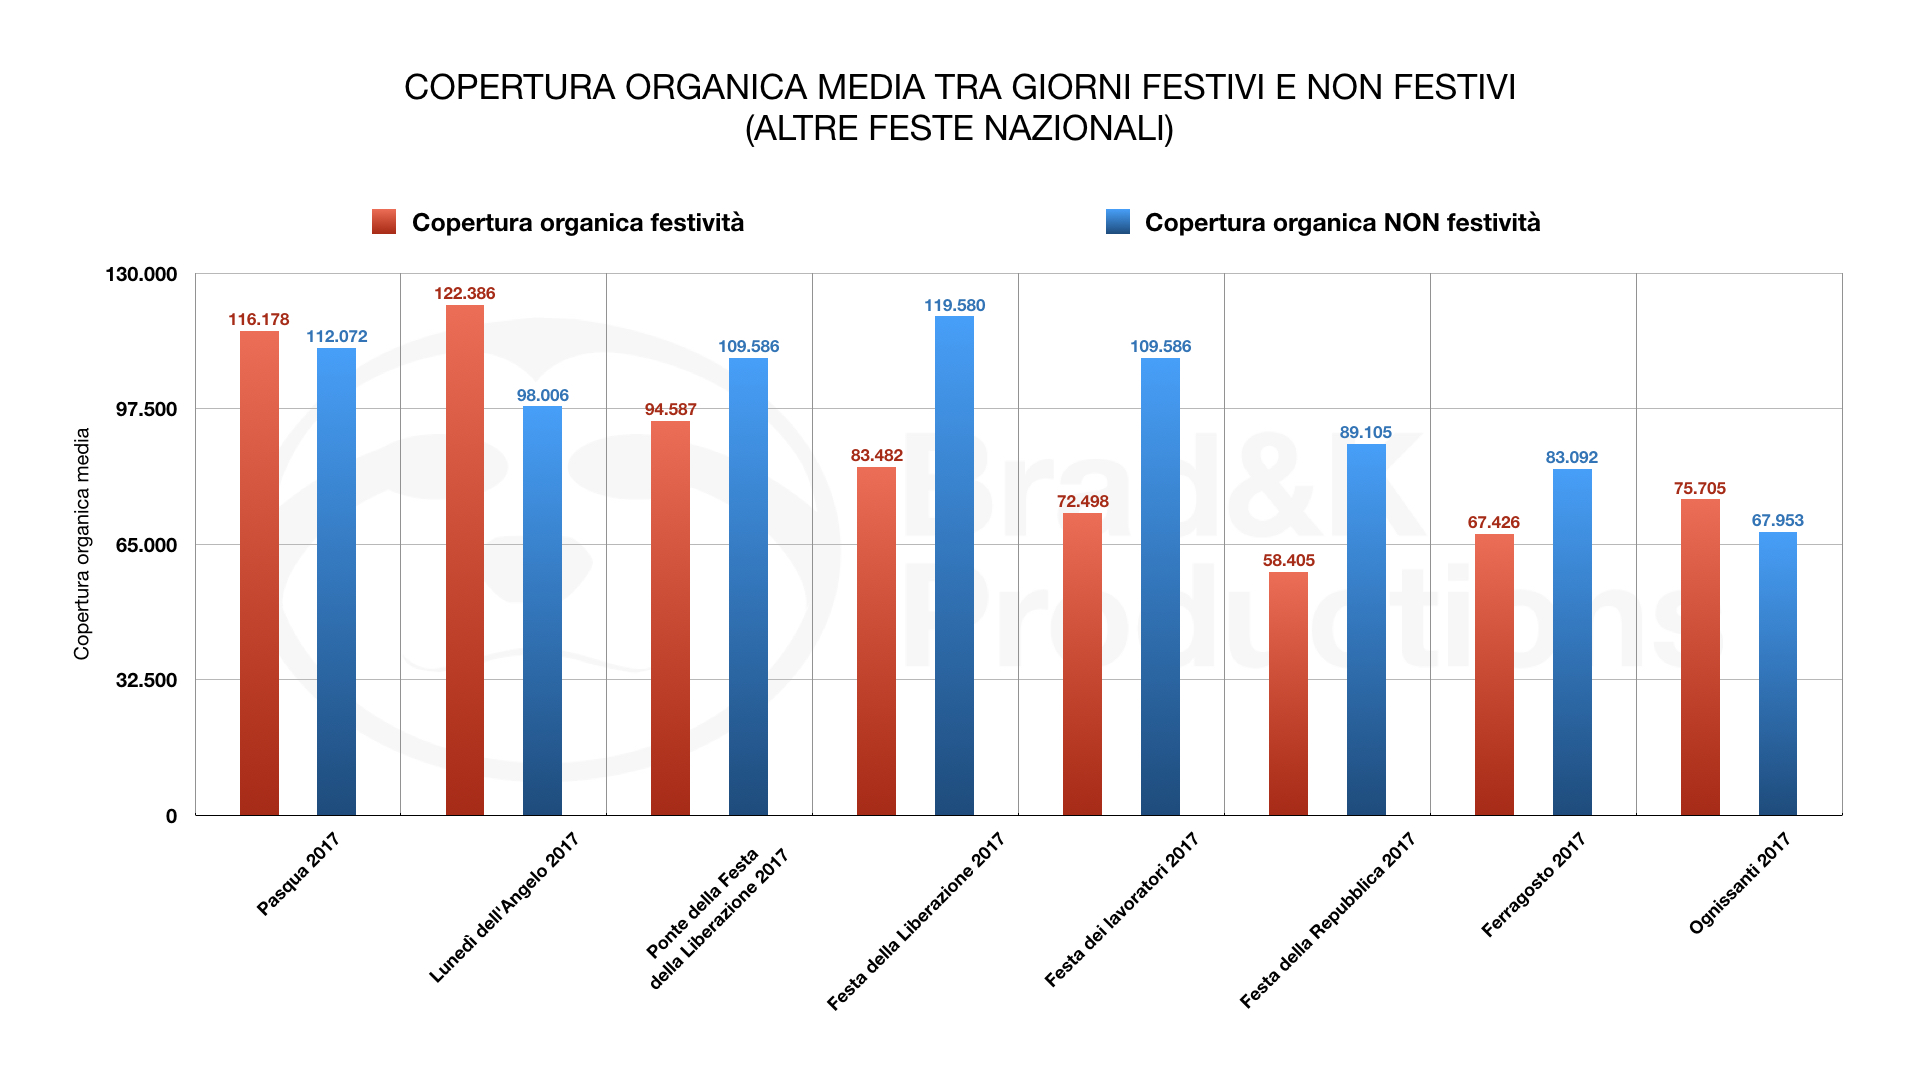 ORGANIC MEDIA COVERAGE BETWEEN PUBLIC HOLIDAYS AND PUBLIC HOLIDAYS(OTHER HOLIDAYS)